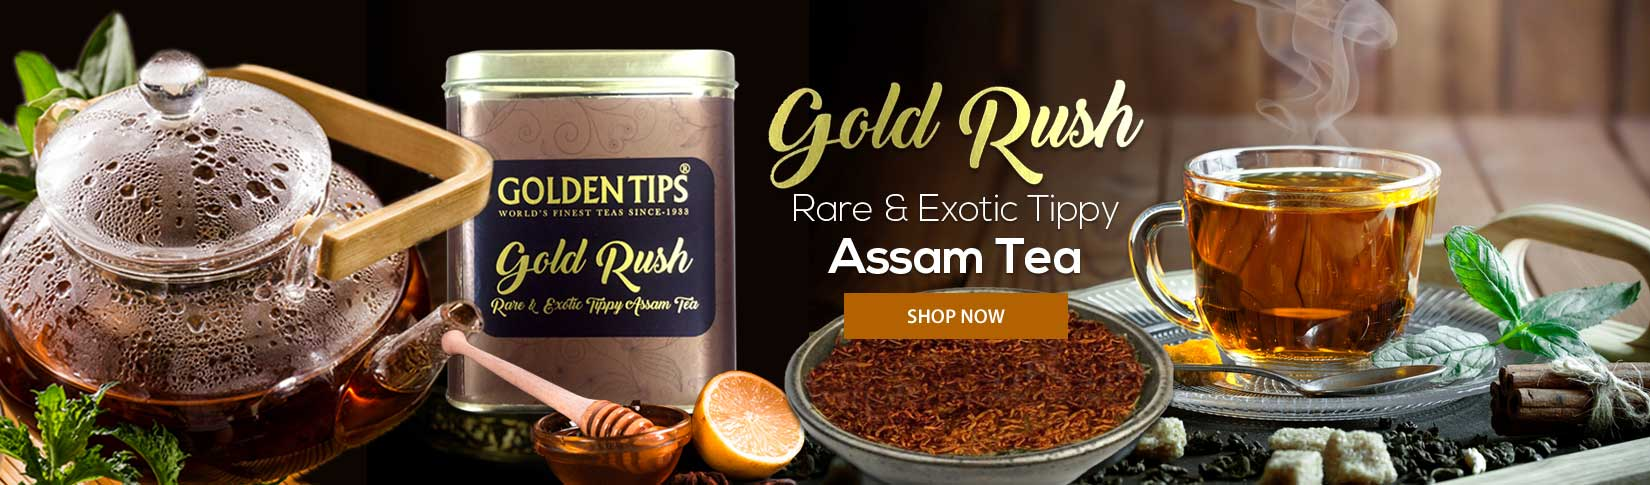 Gold Rush Assam Tea